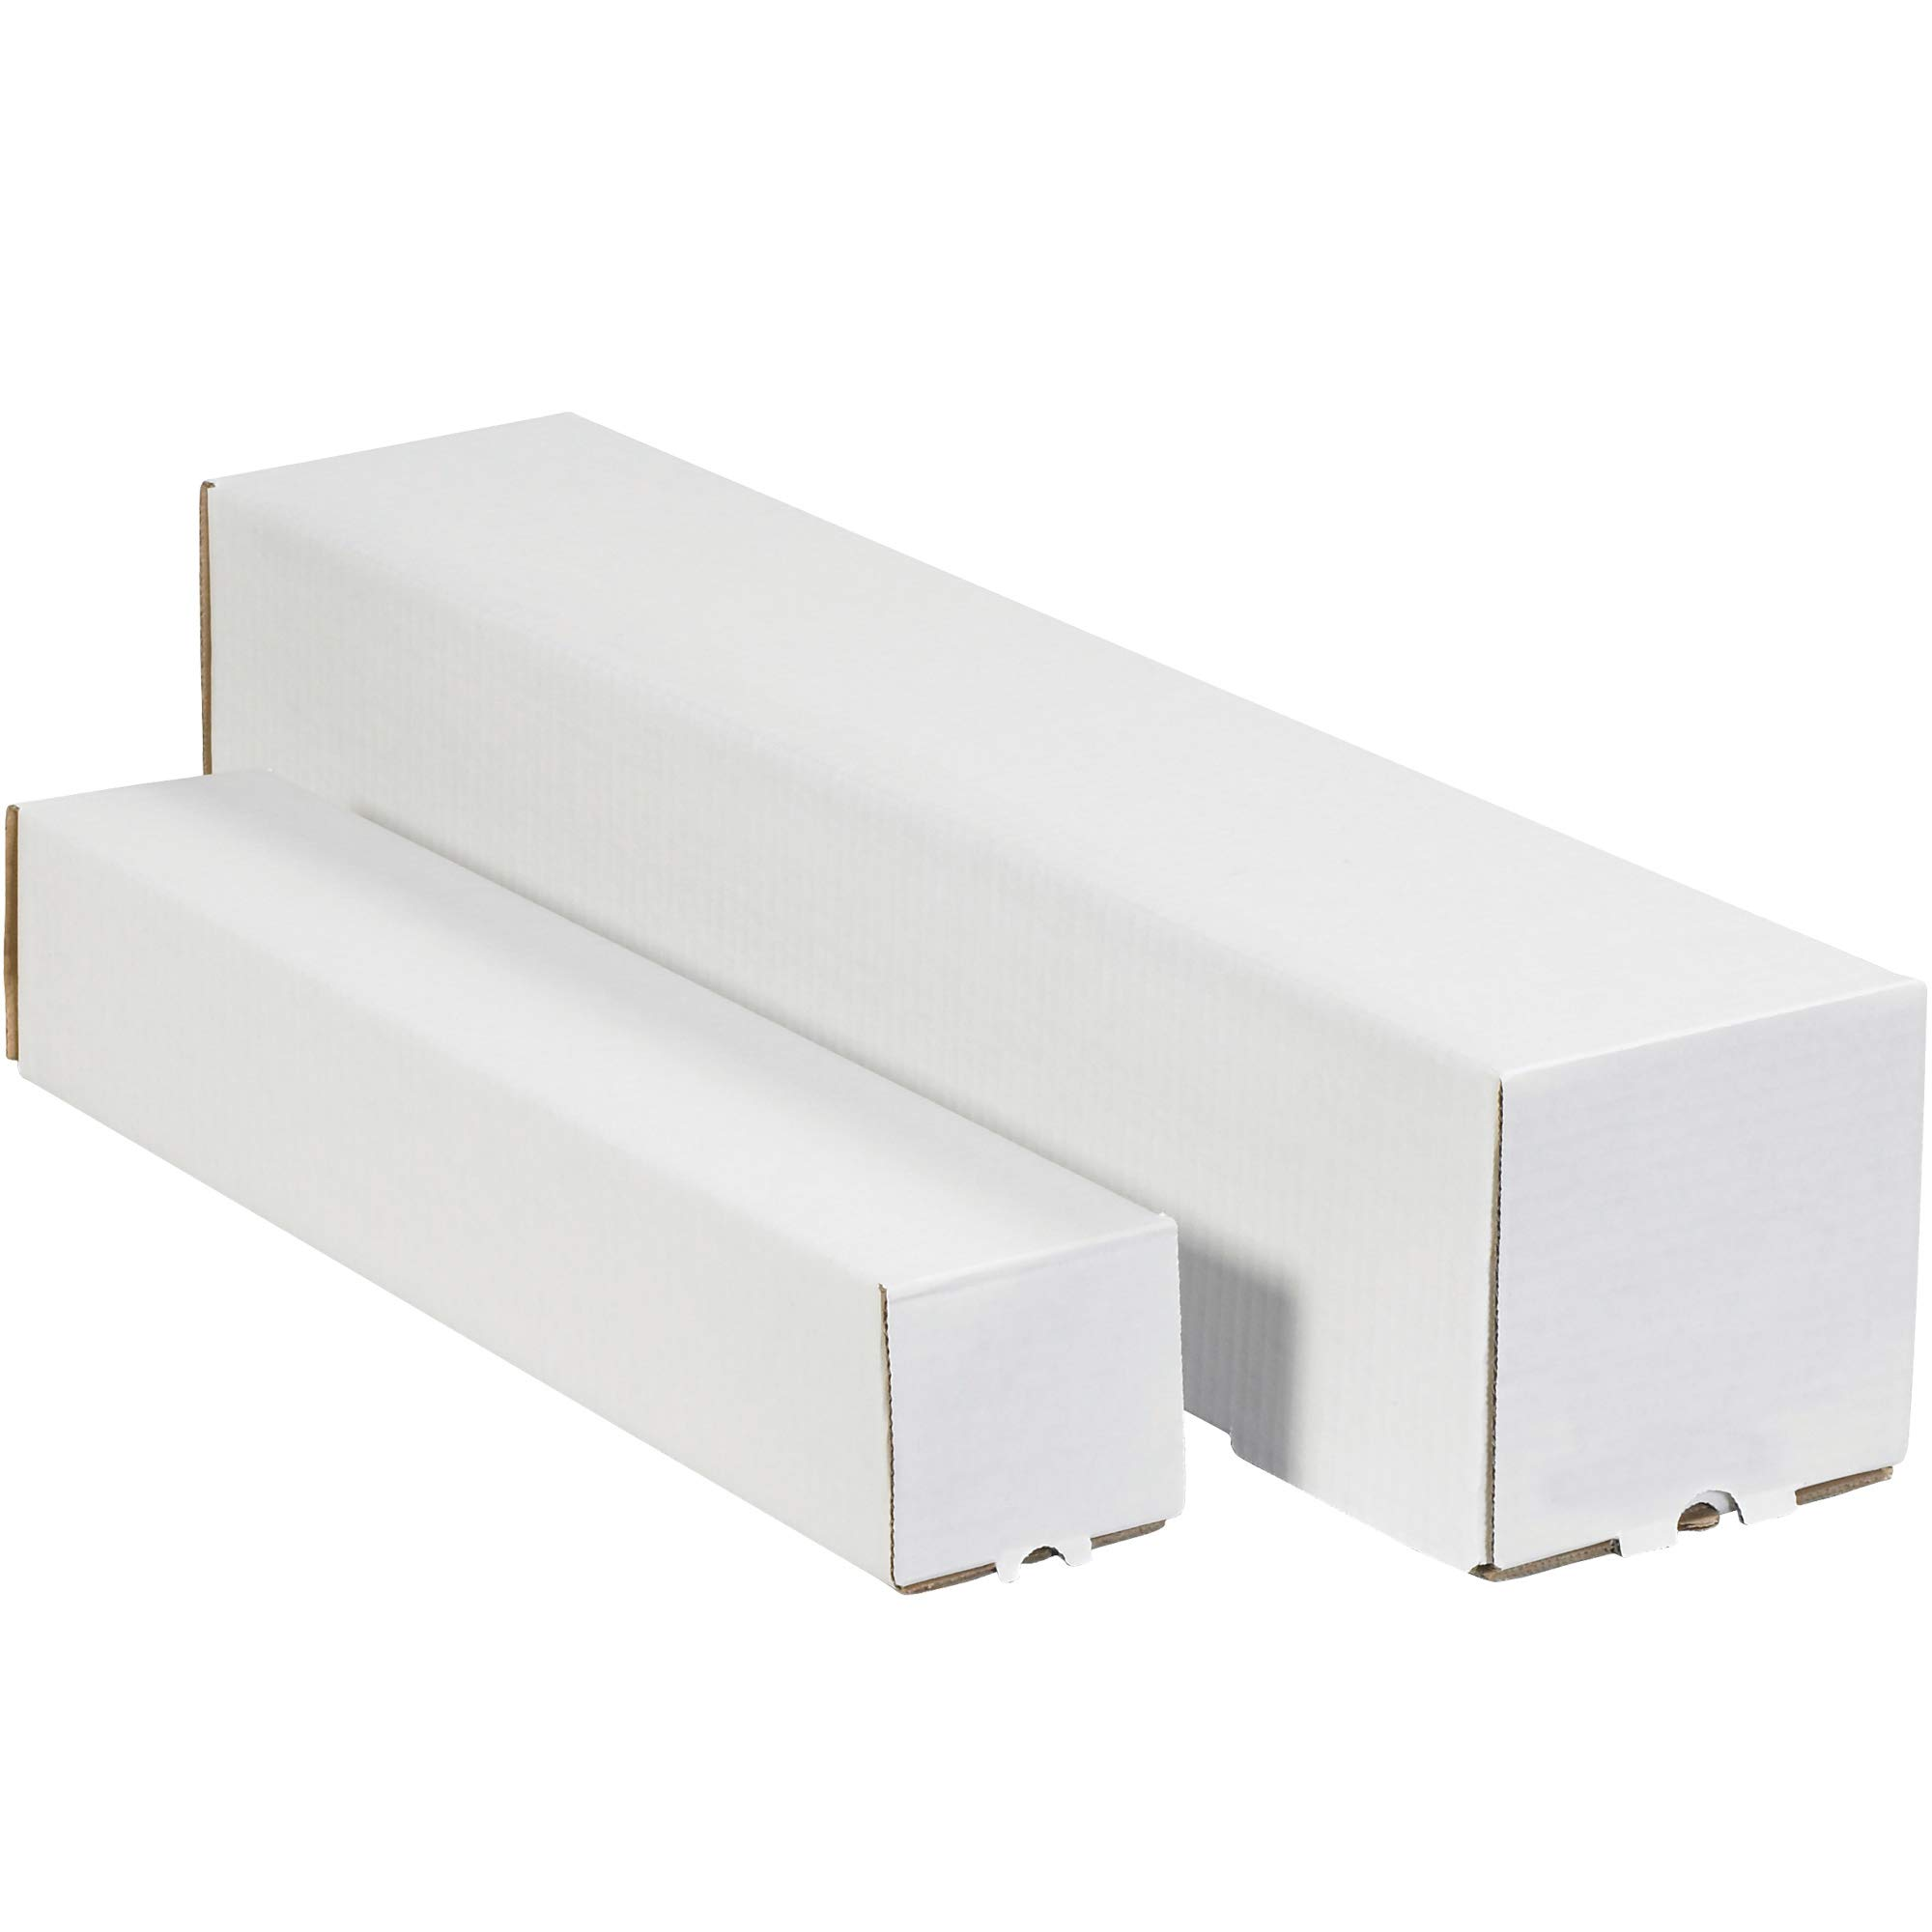 3 x 3 x 30'' White Square Mailing Tubes by Choice Shipping Supplies